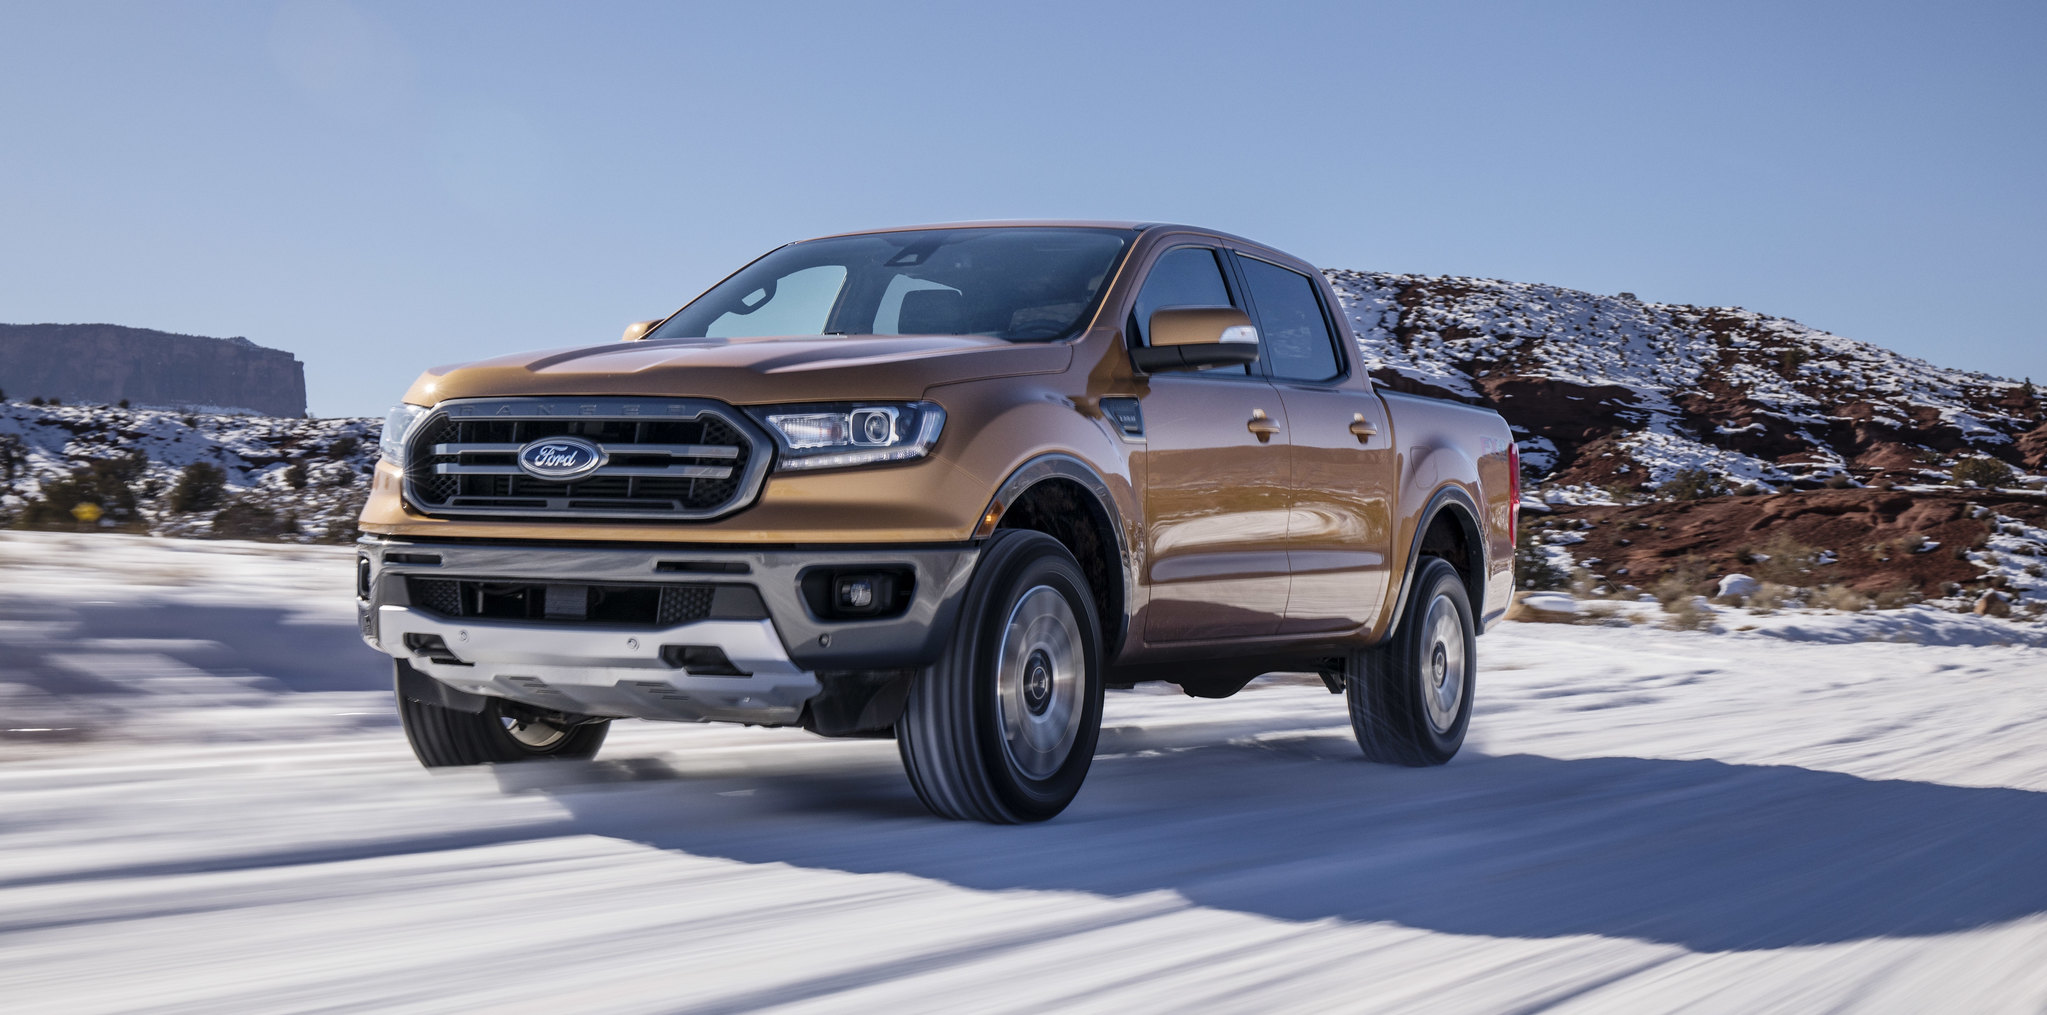 This is the 2019 Ford Ranger